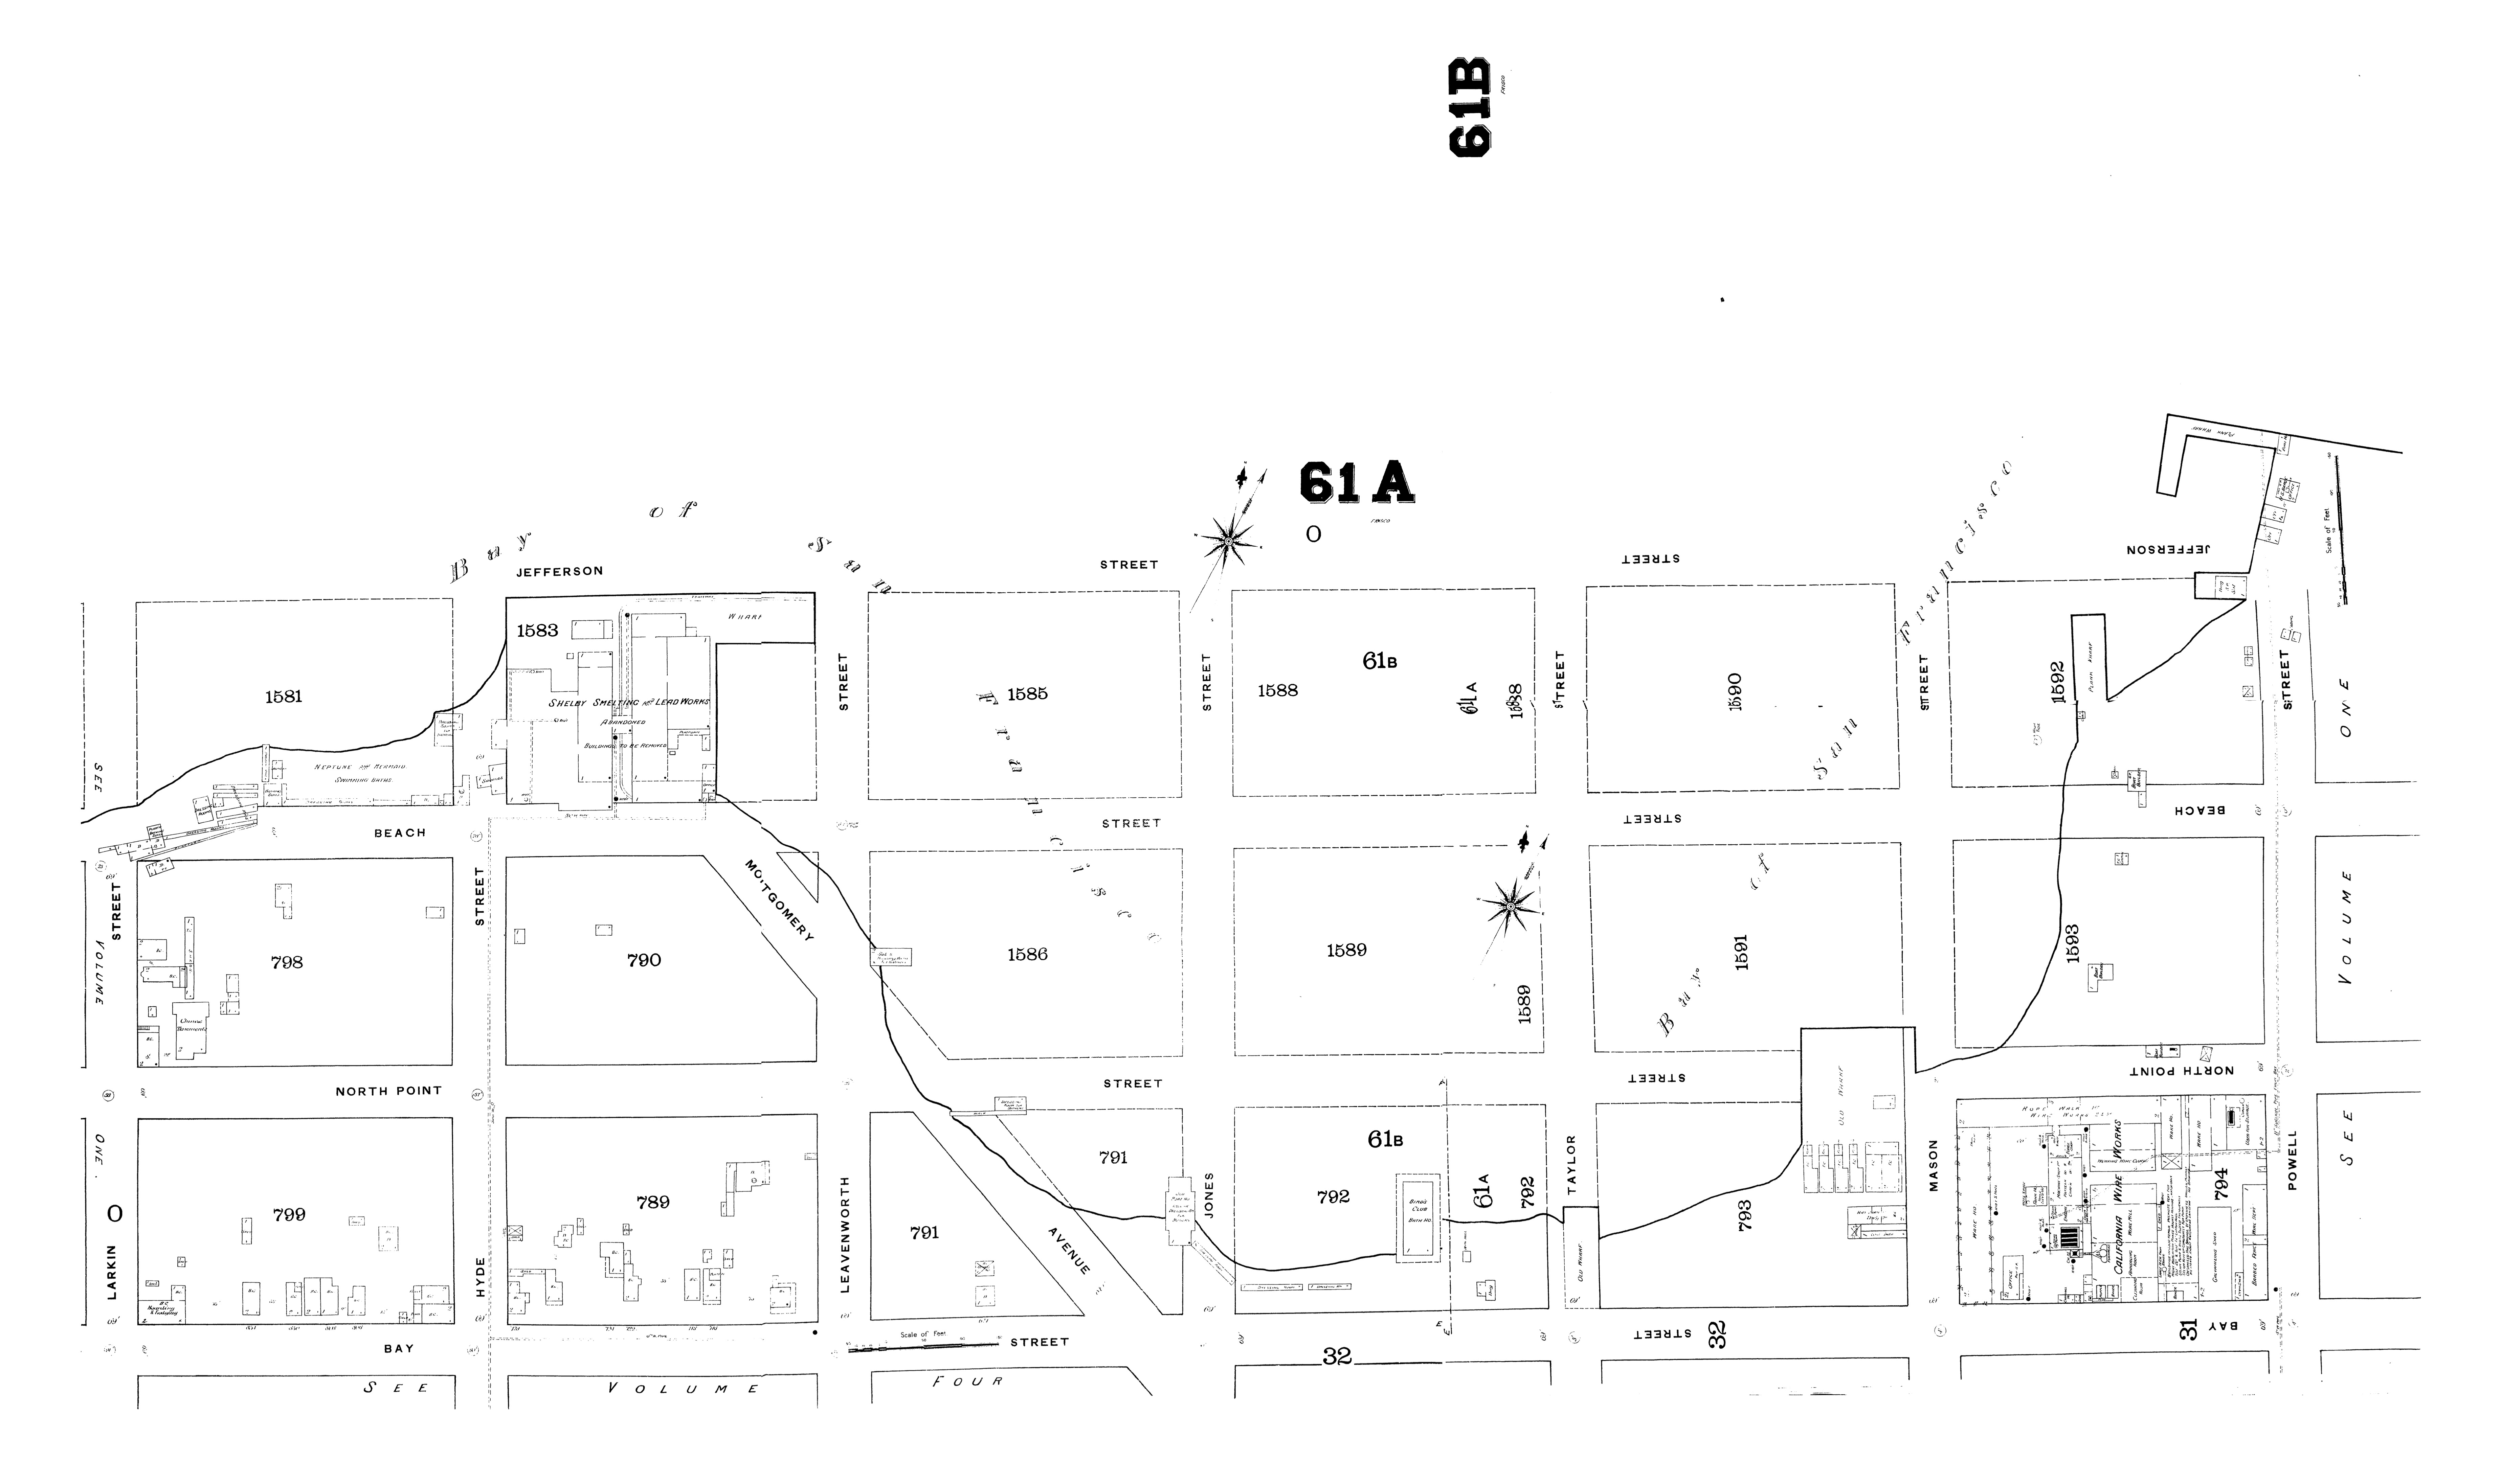 1886 sf hyde to powell jefferson to bay